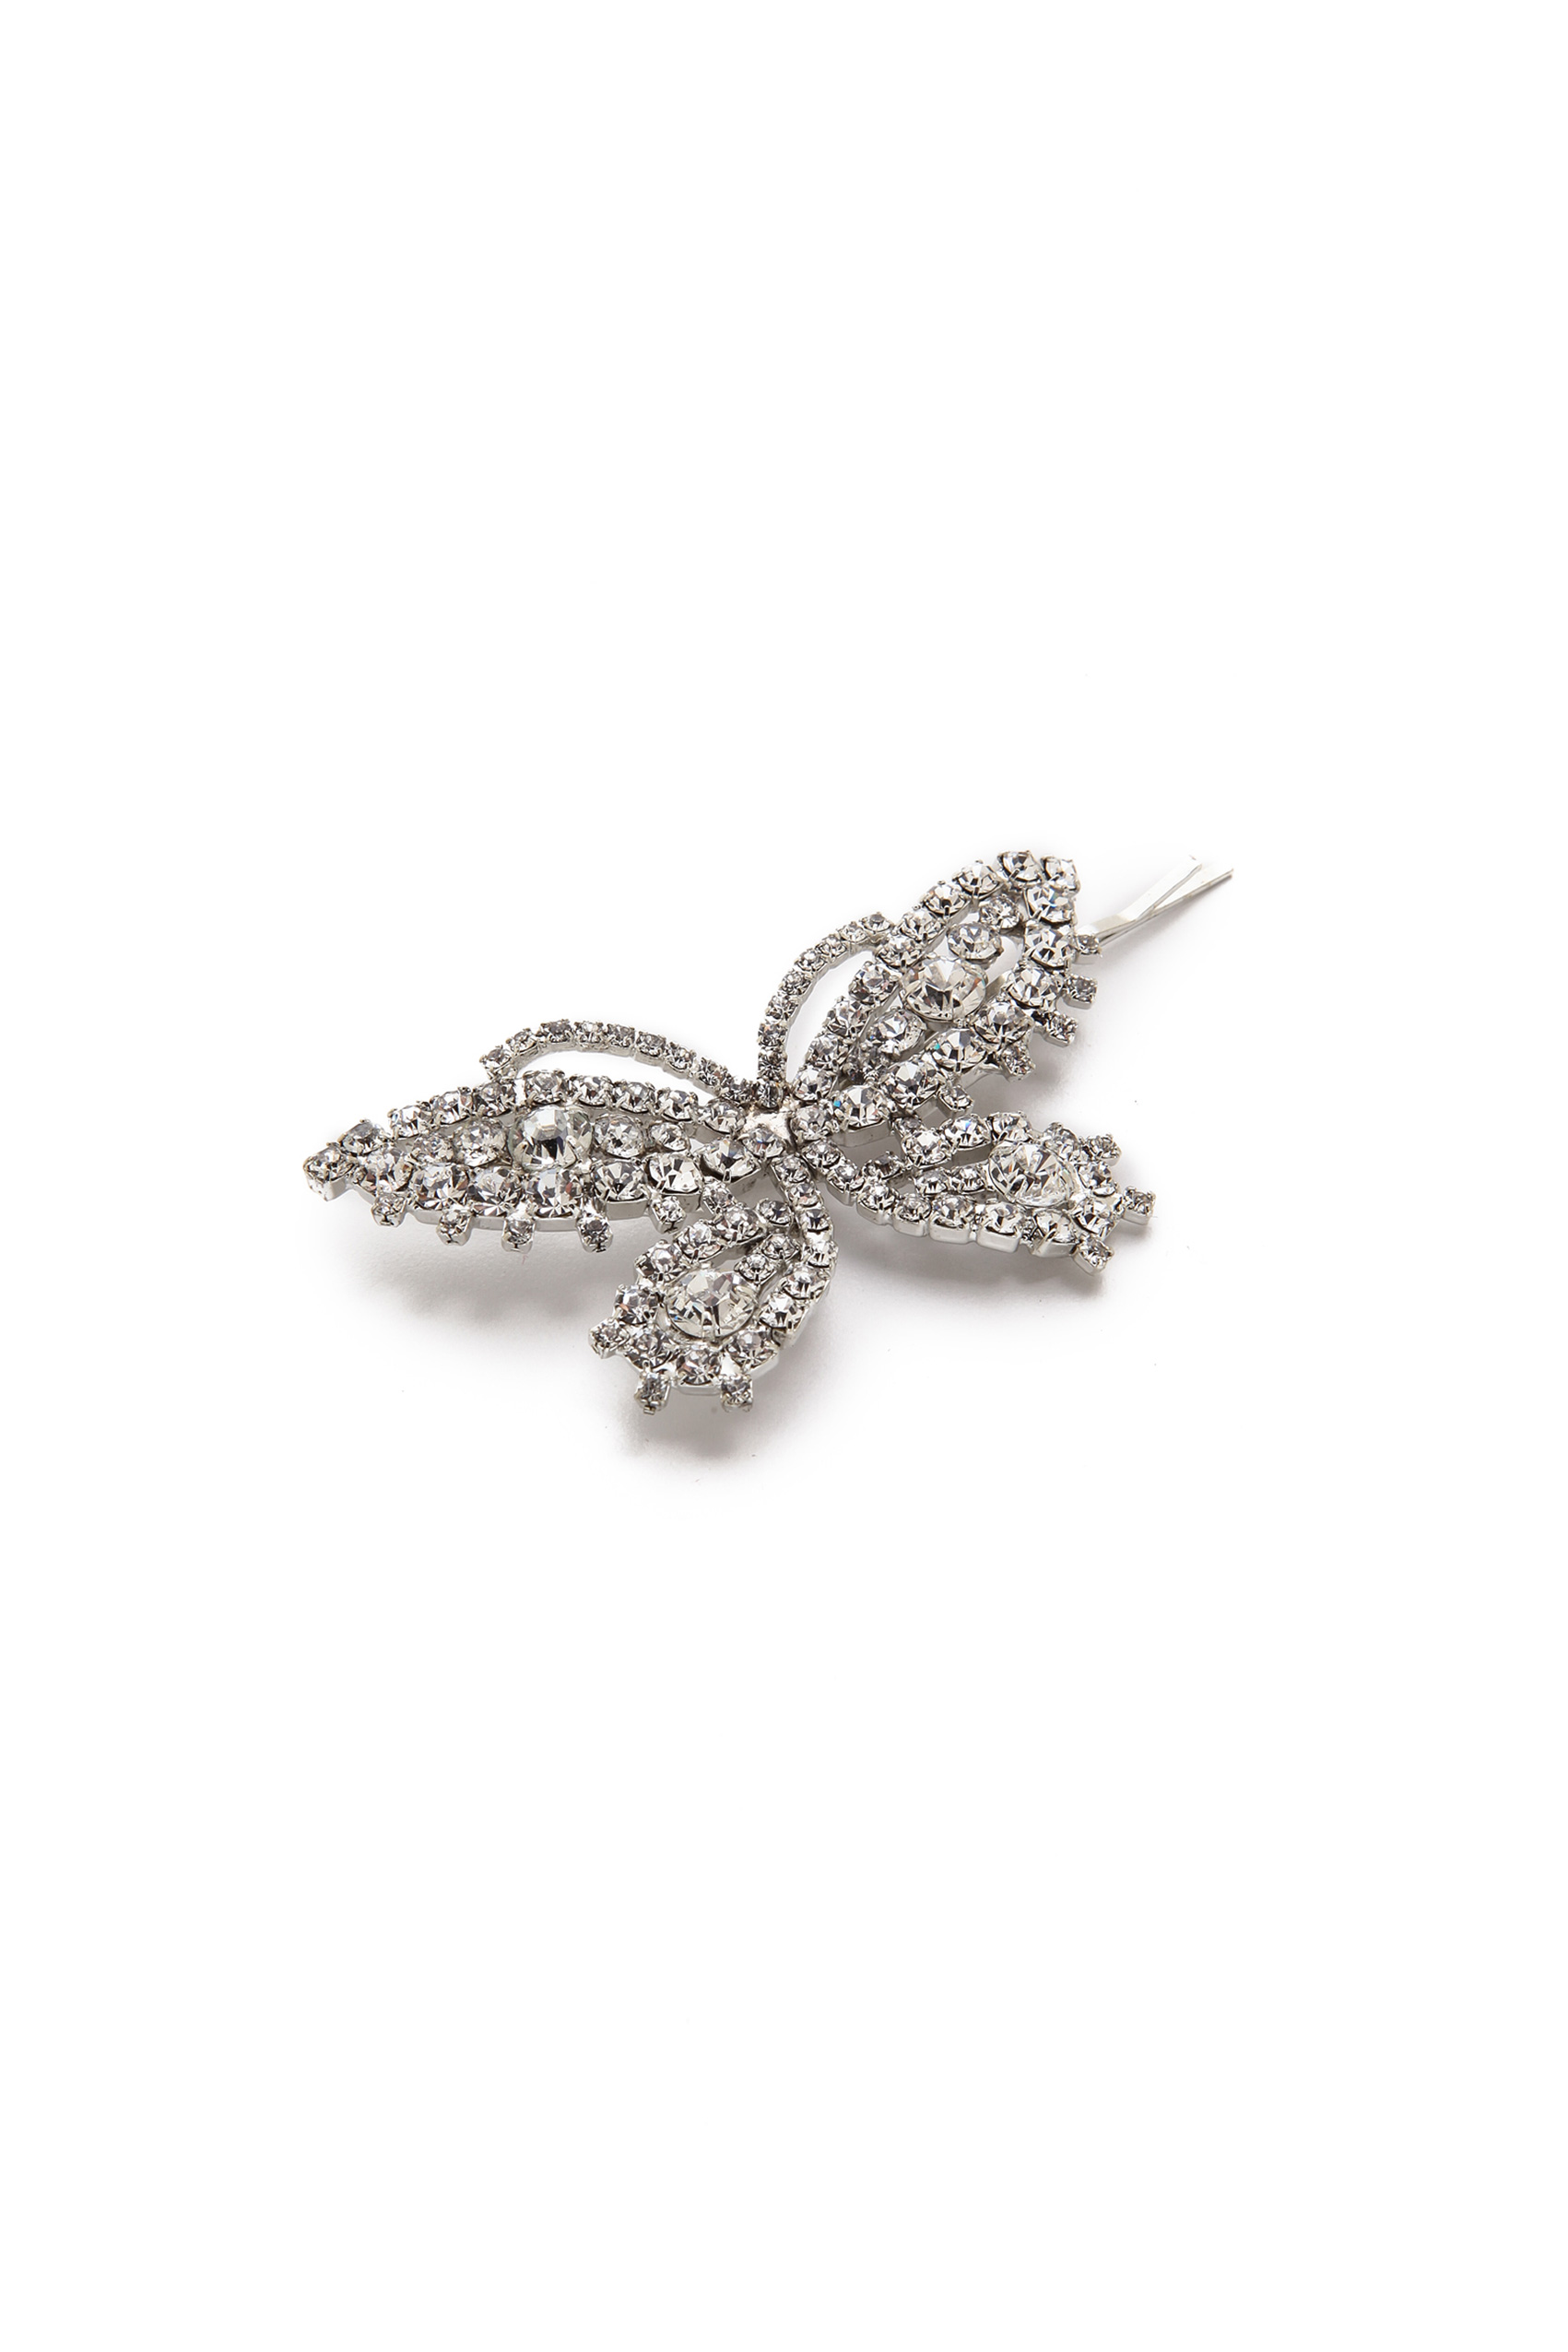 [RENTAL][Mariposa Bobby Pin]by JENNIFER BEHR(参考価格¥36,720)